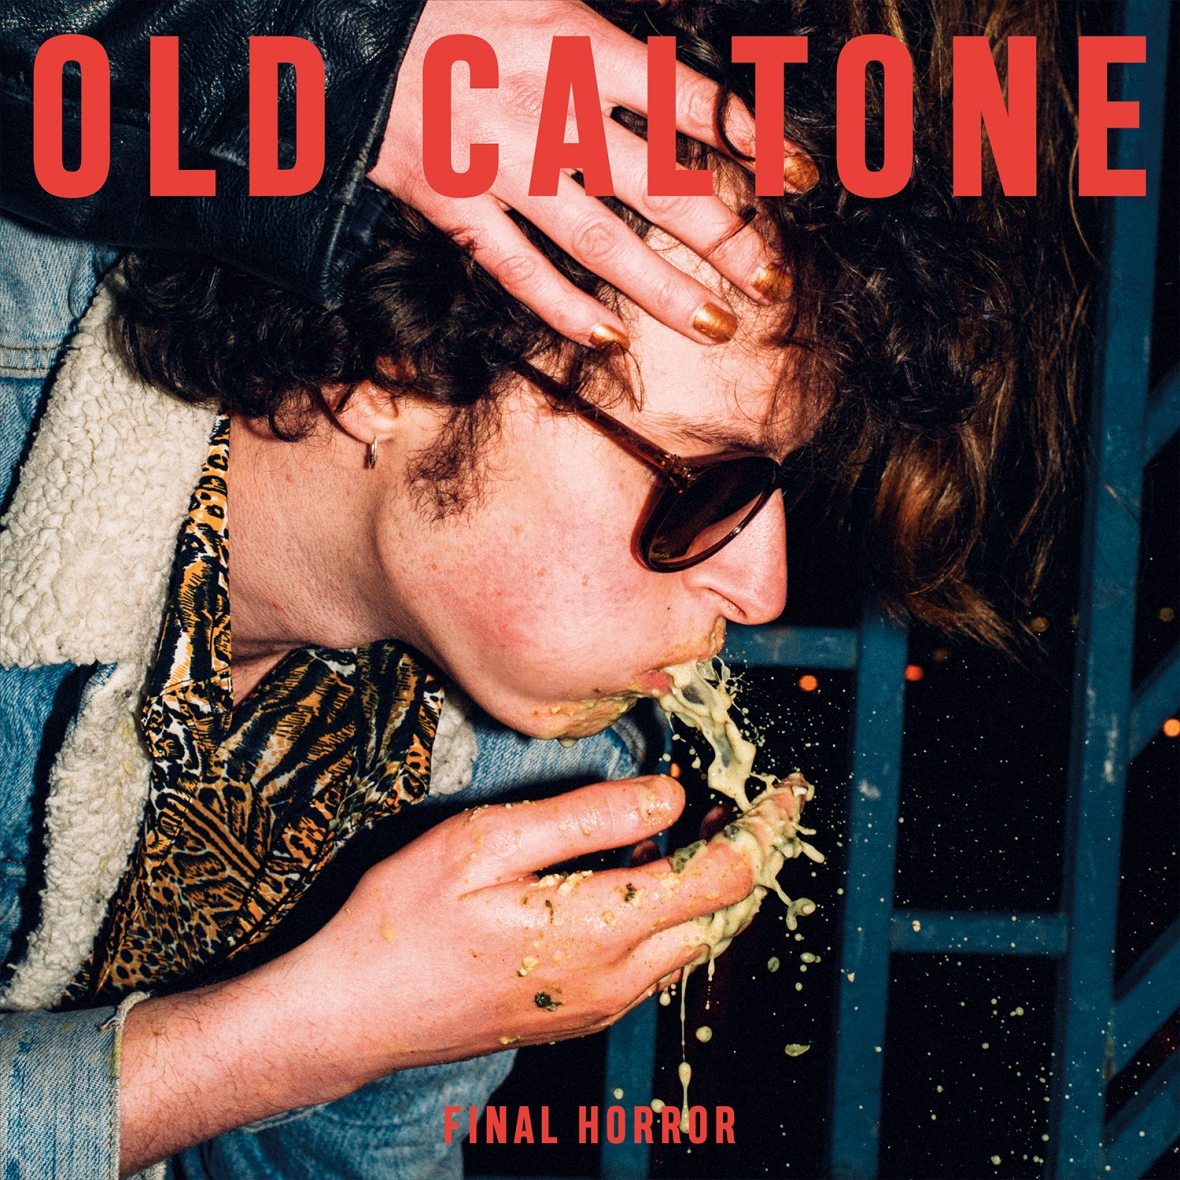 Old Caltone - Final Horror